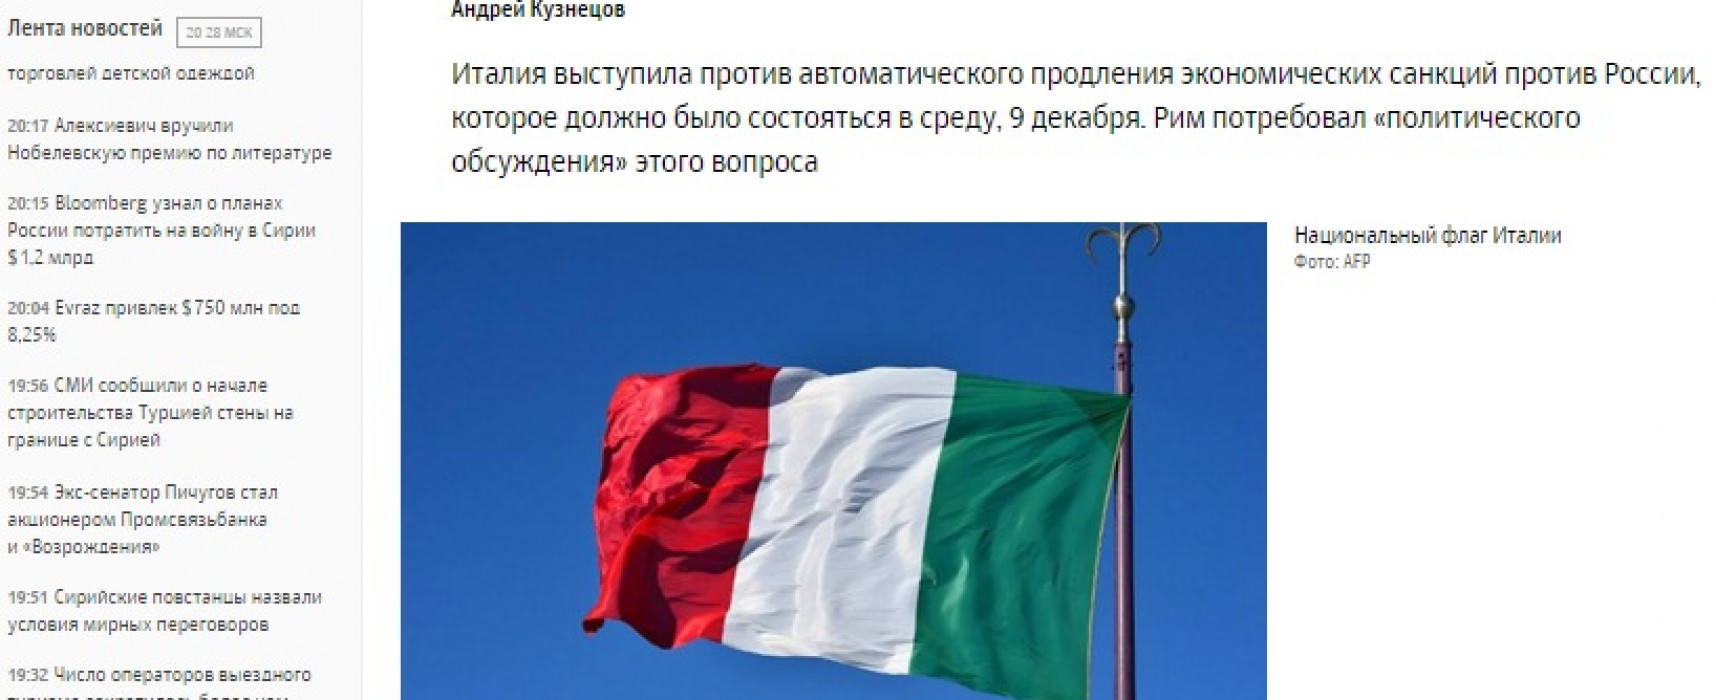 Italy Denies Blocking Sanctions against Russia